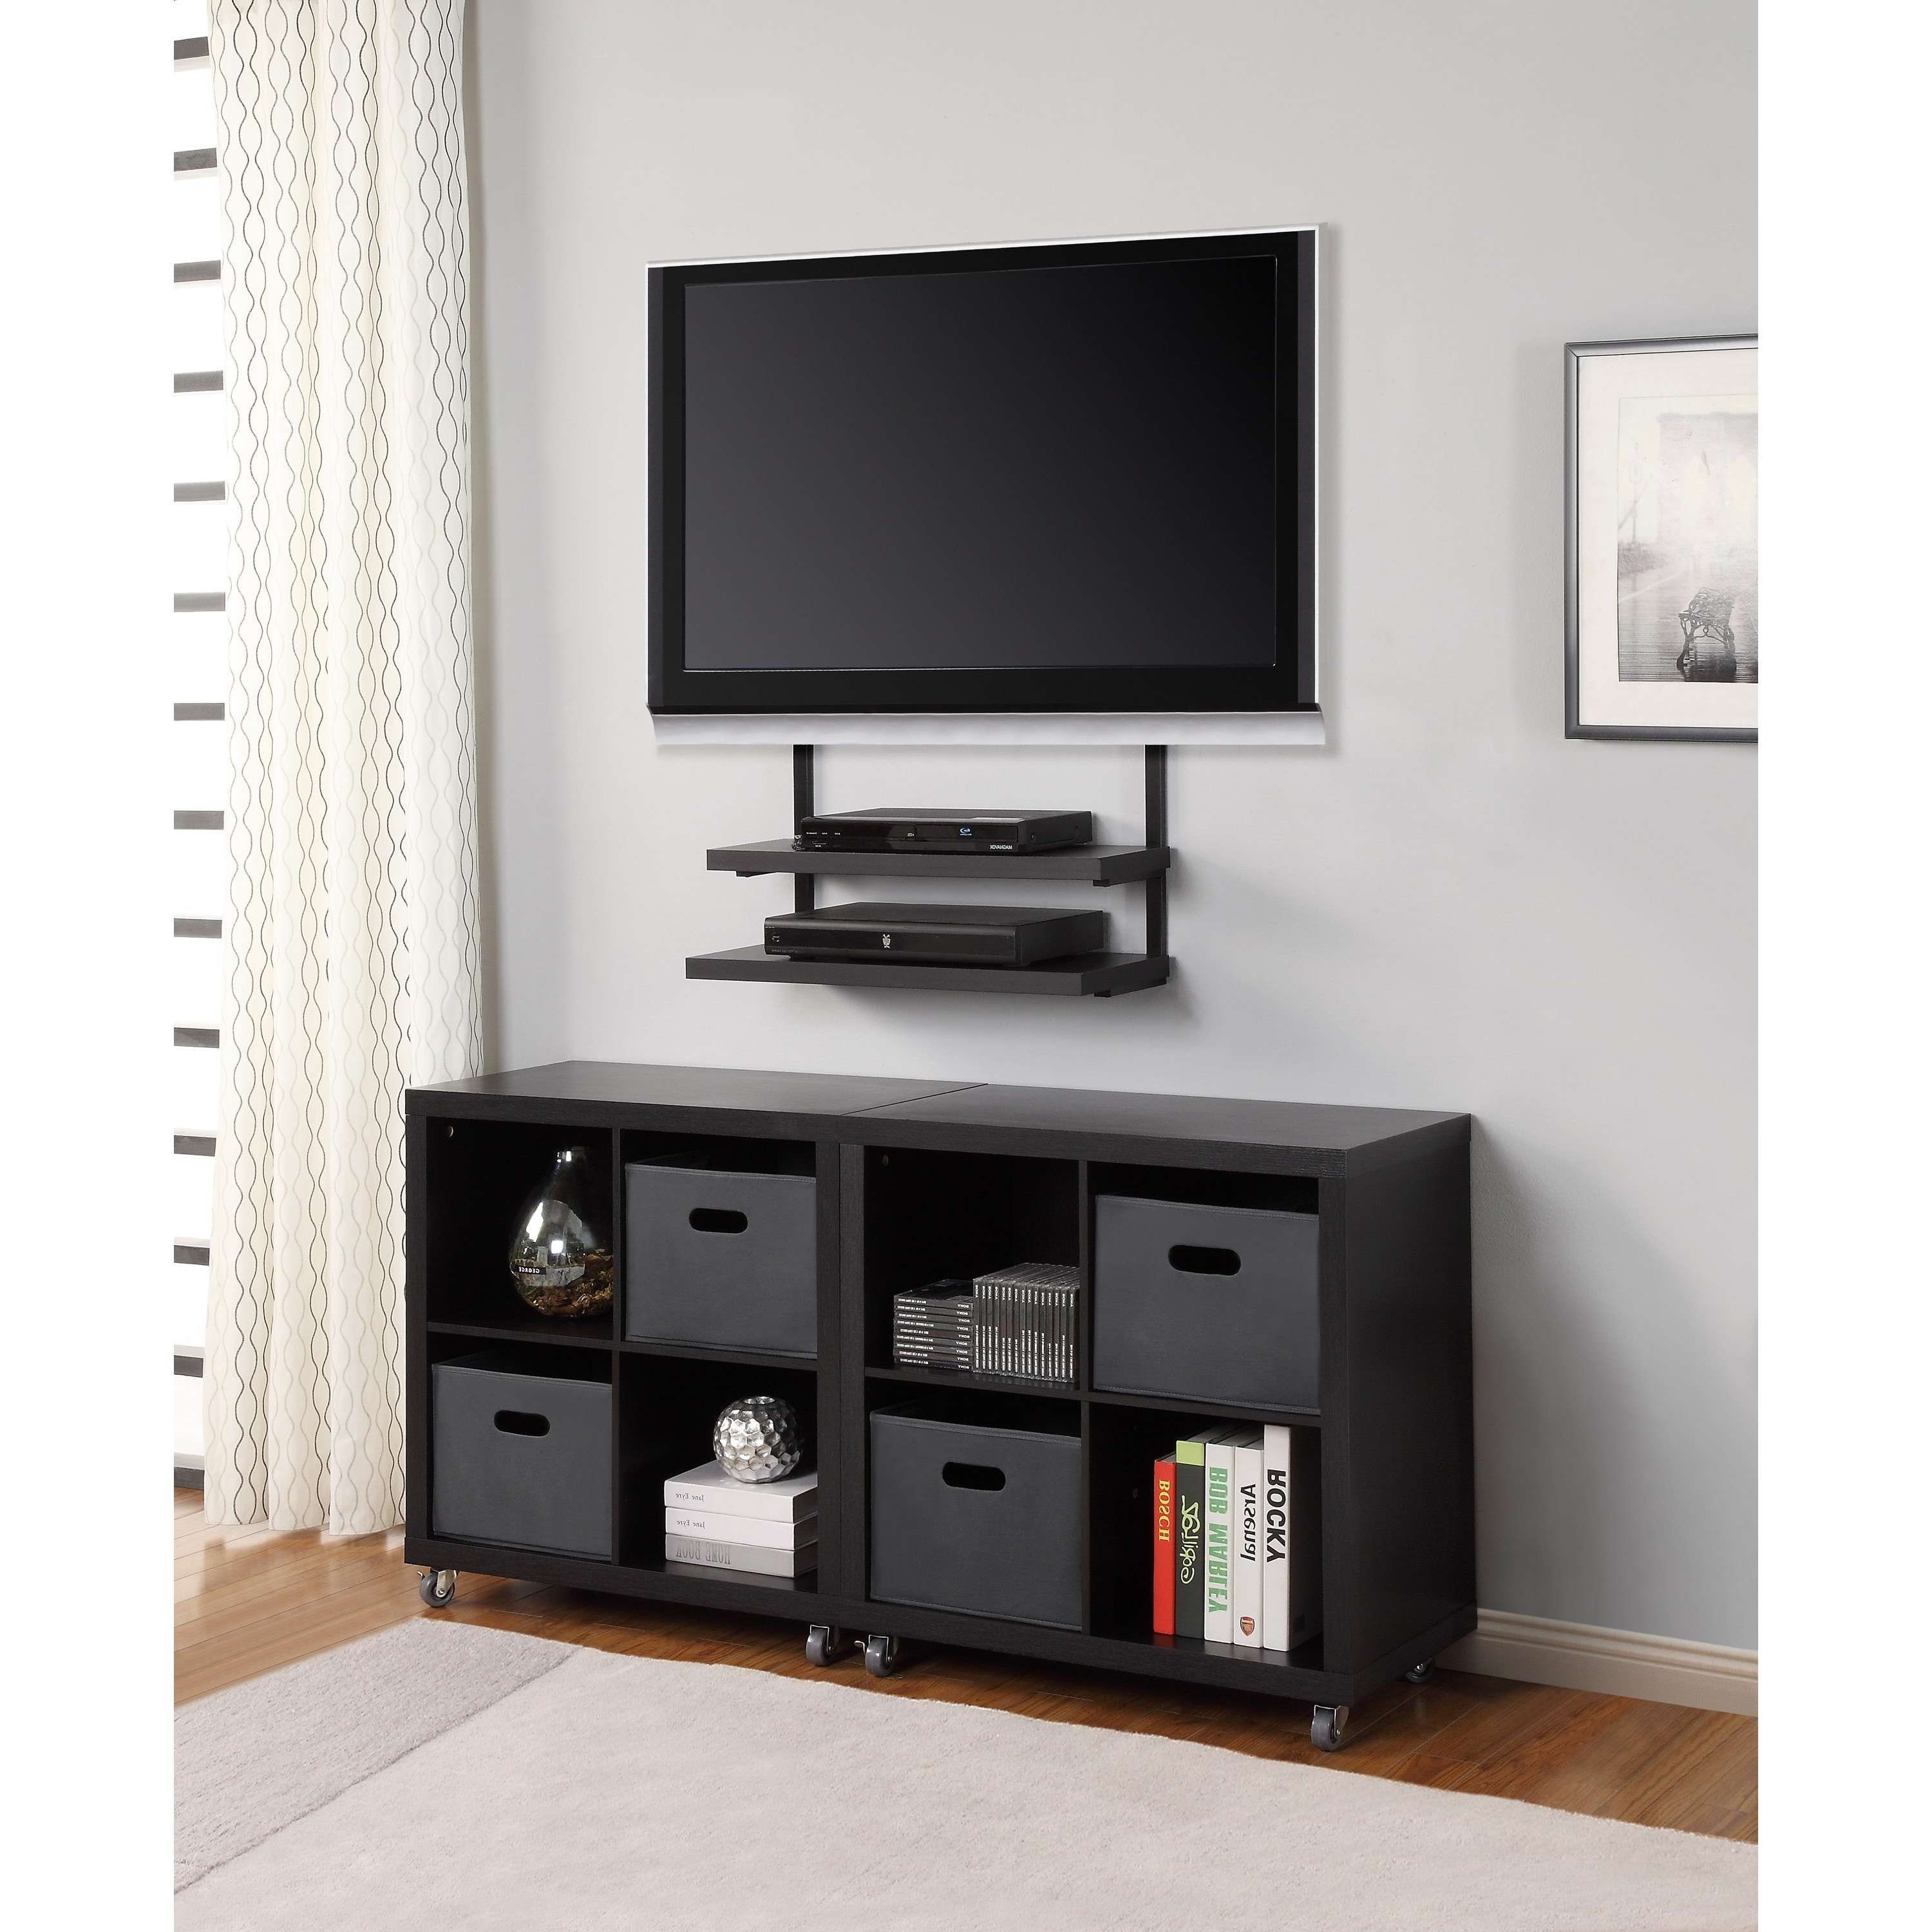 Unique Tv Stand Ideas Small Corner Awesome Images About Trends And Regarding Unique Tv Stands (View 17 of 20)